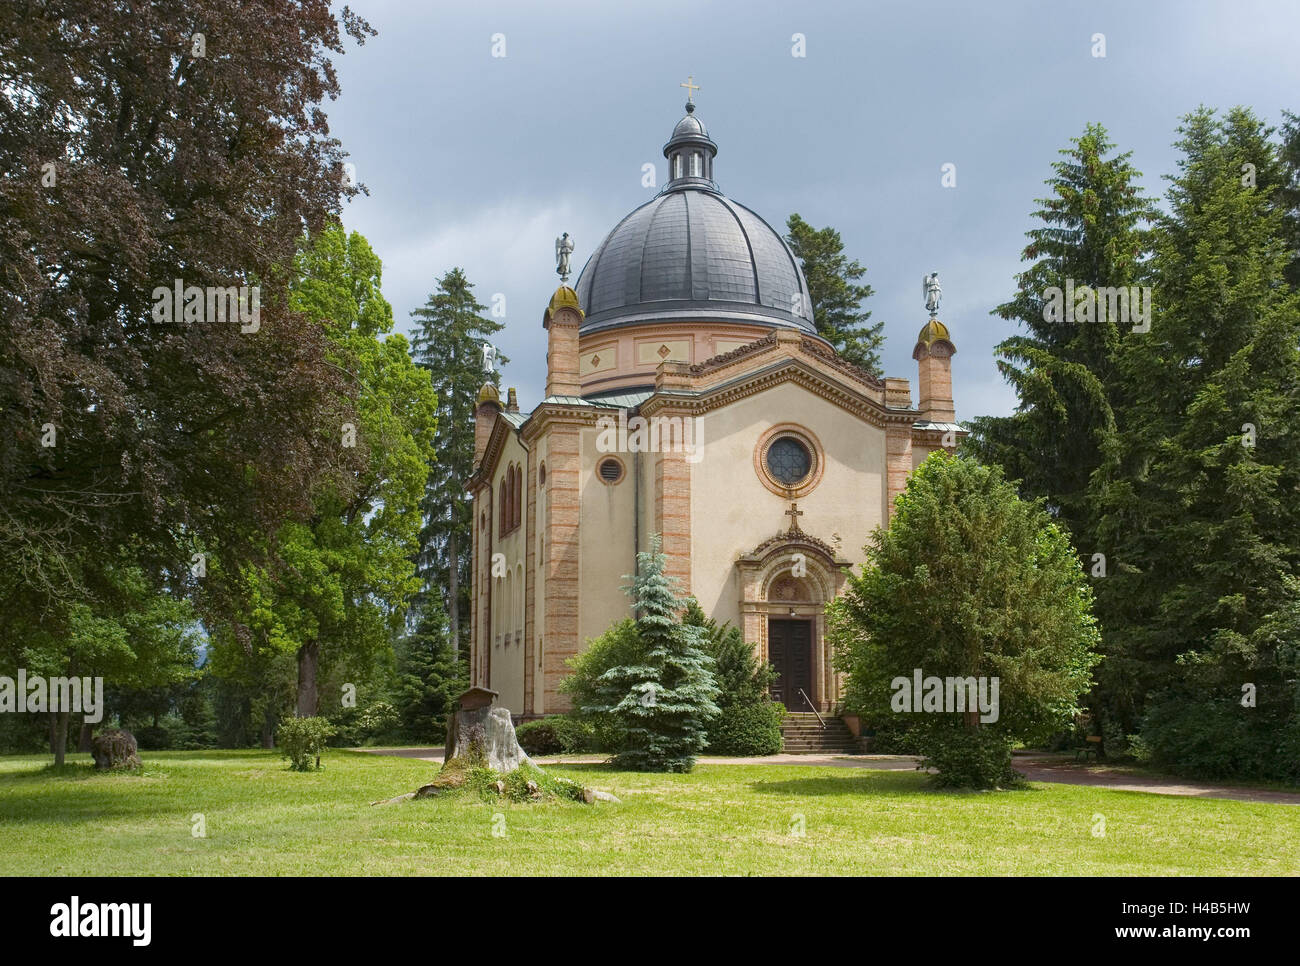 Germany, Baden-Wurttemberg, to new things, crypt church the princes to, prince's mountain, Black Forest ship - Stock Image